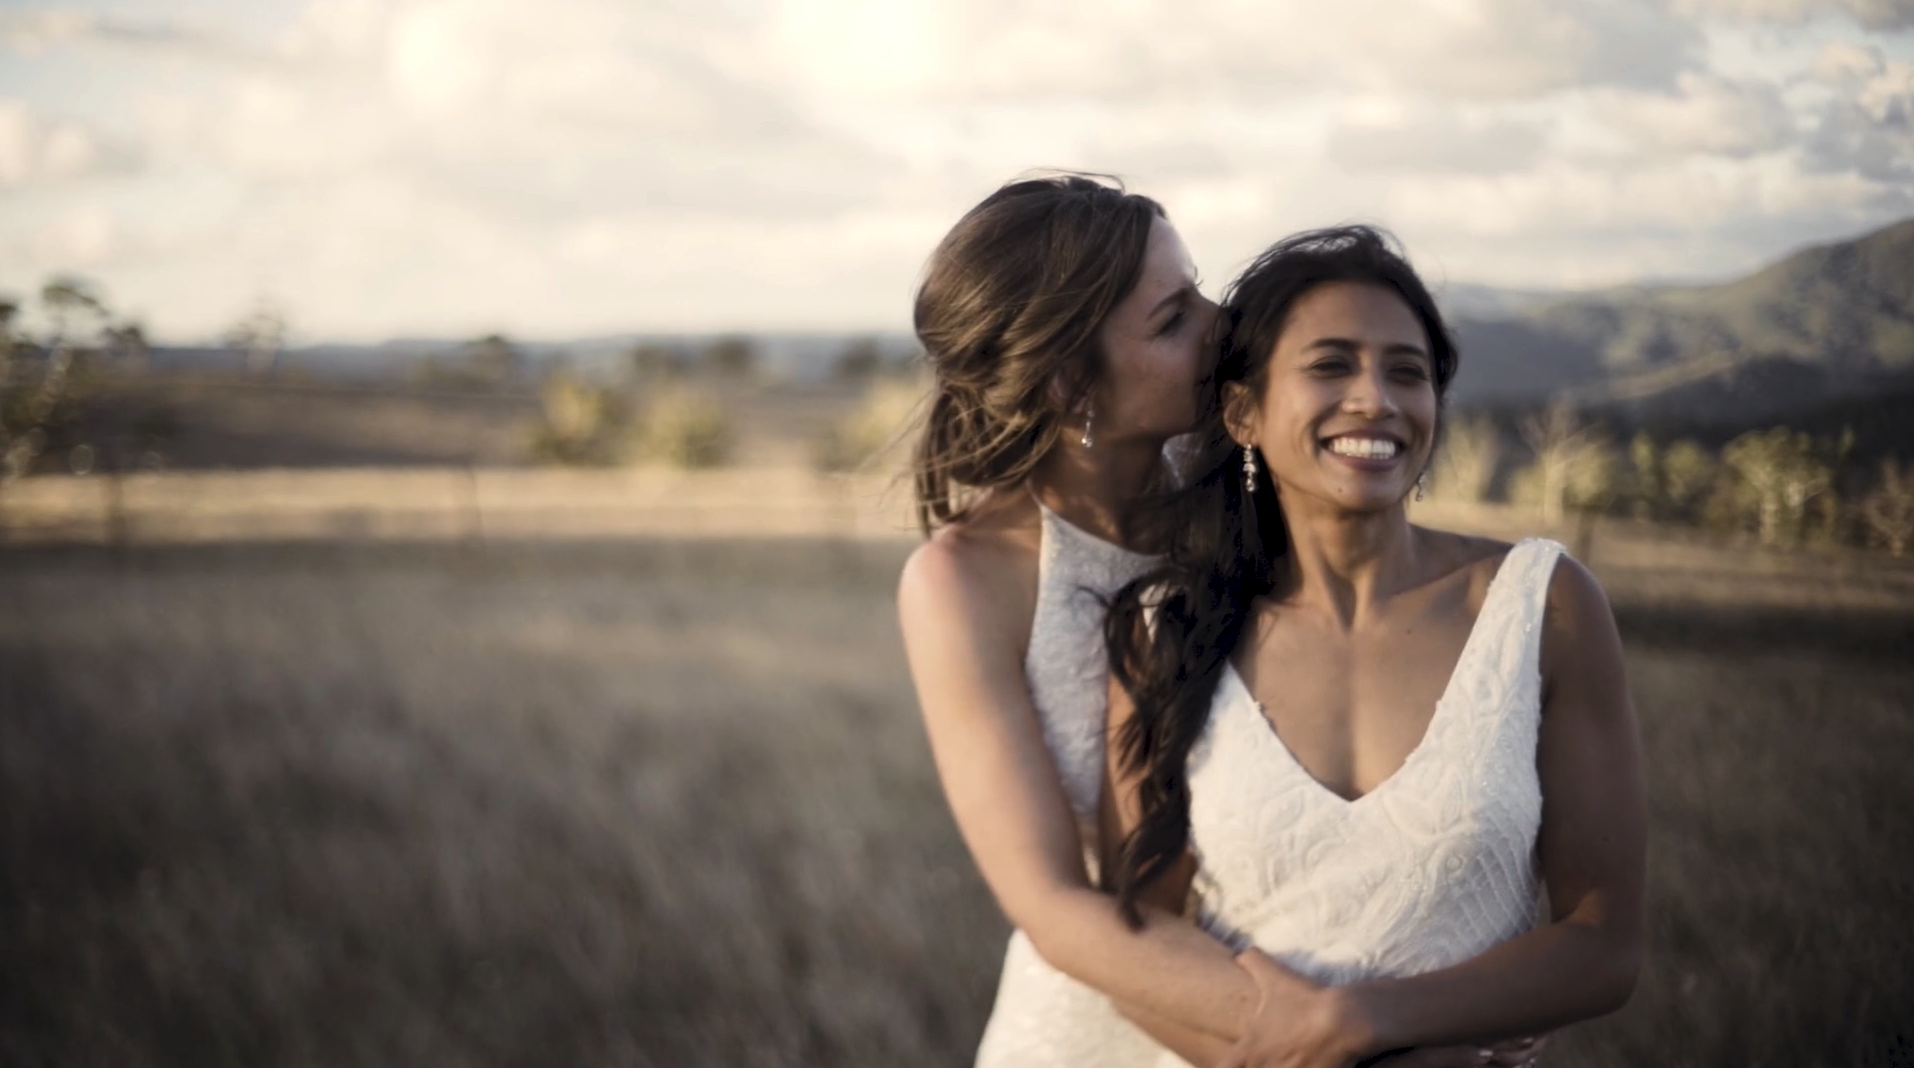 Cherie + Kirsten | Rydal, Australia | Seclusions